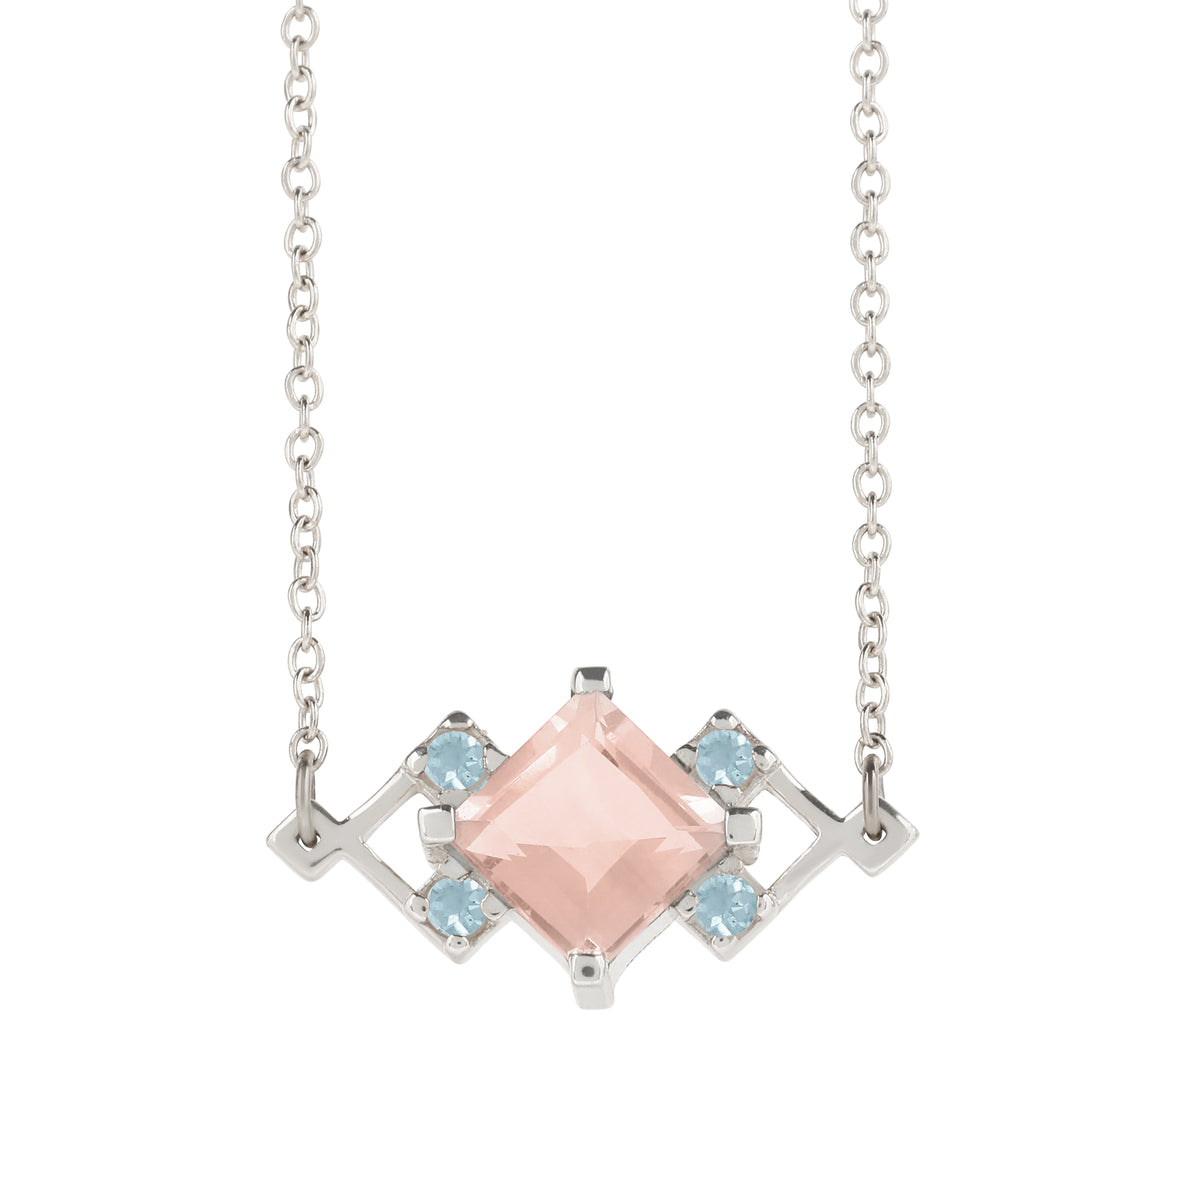 Reconceptions Petite Necklace - Rhodium - Pink